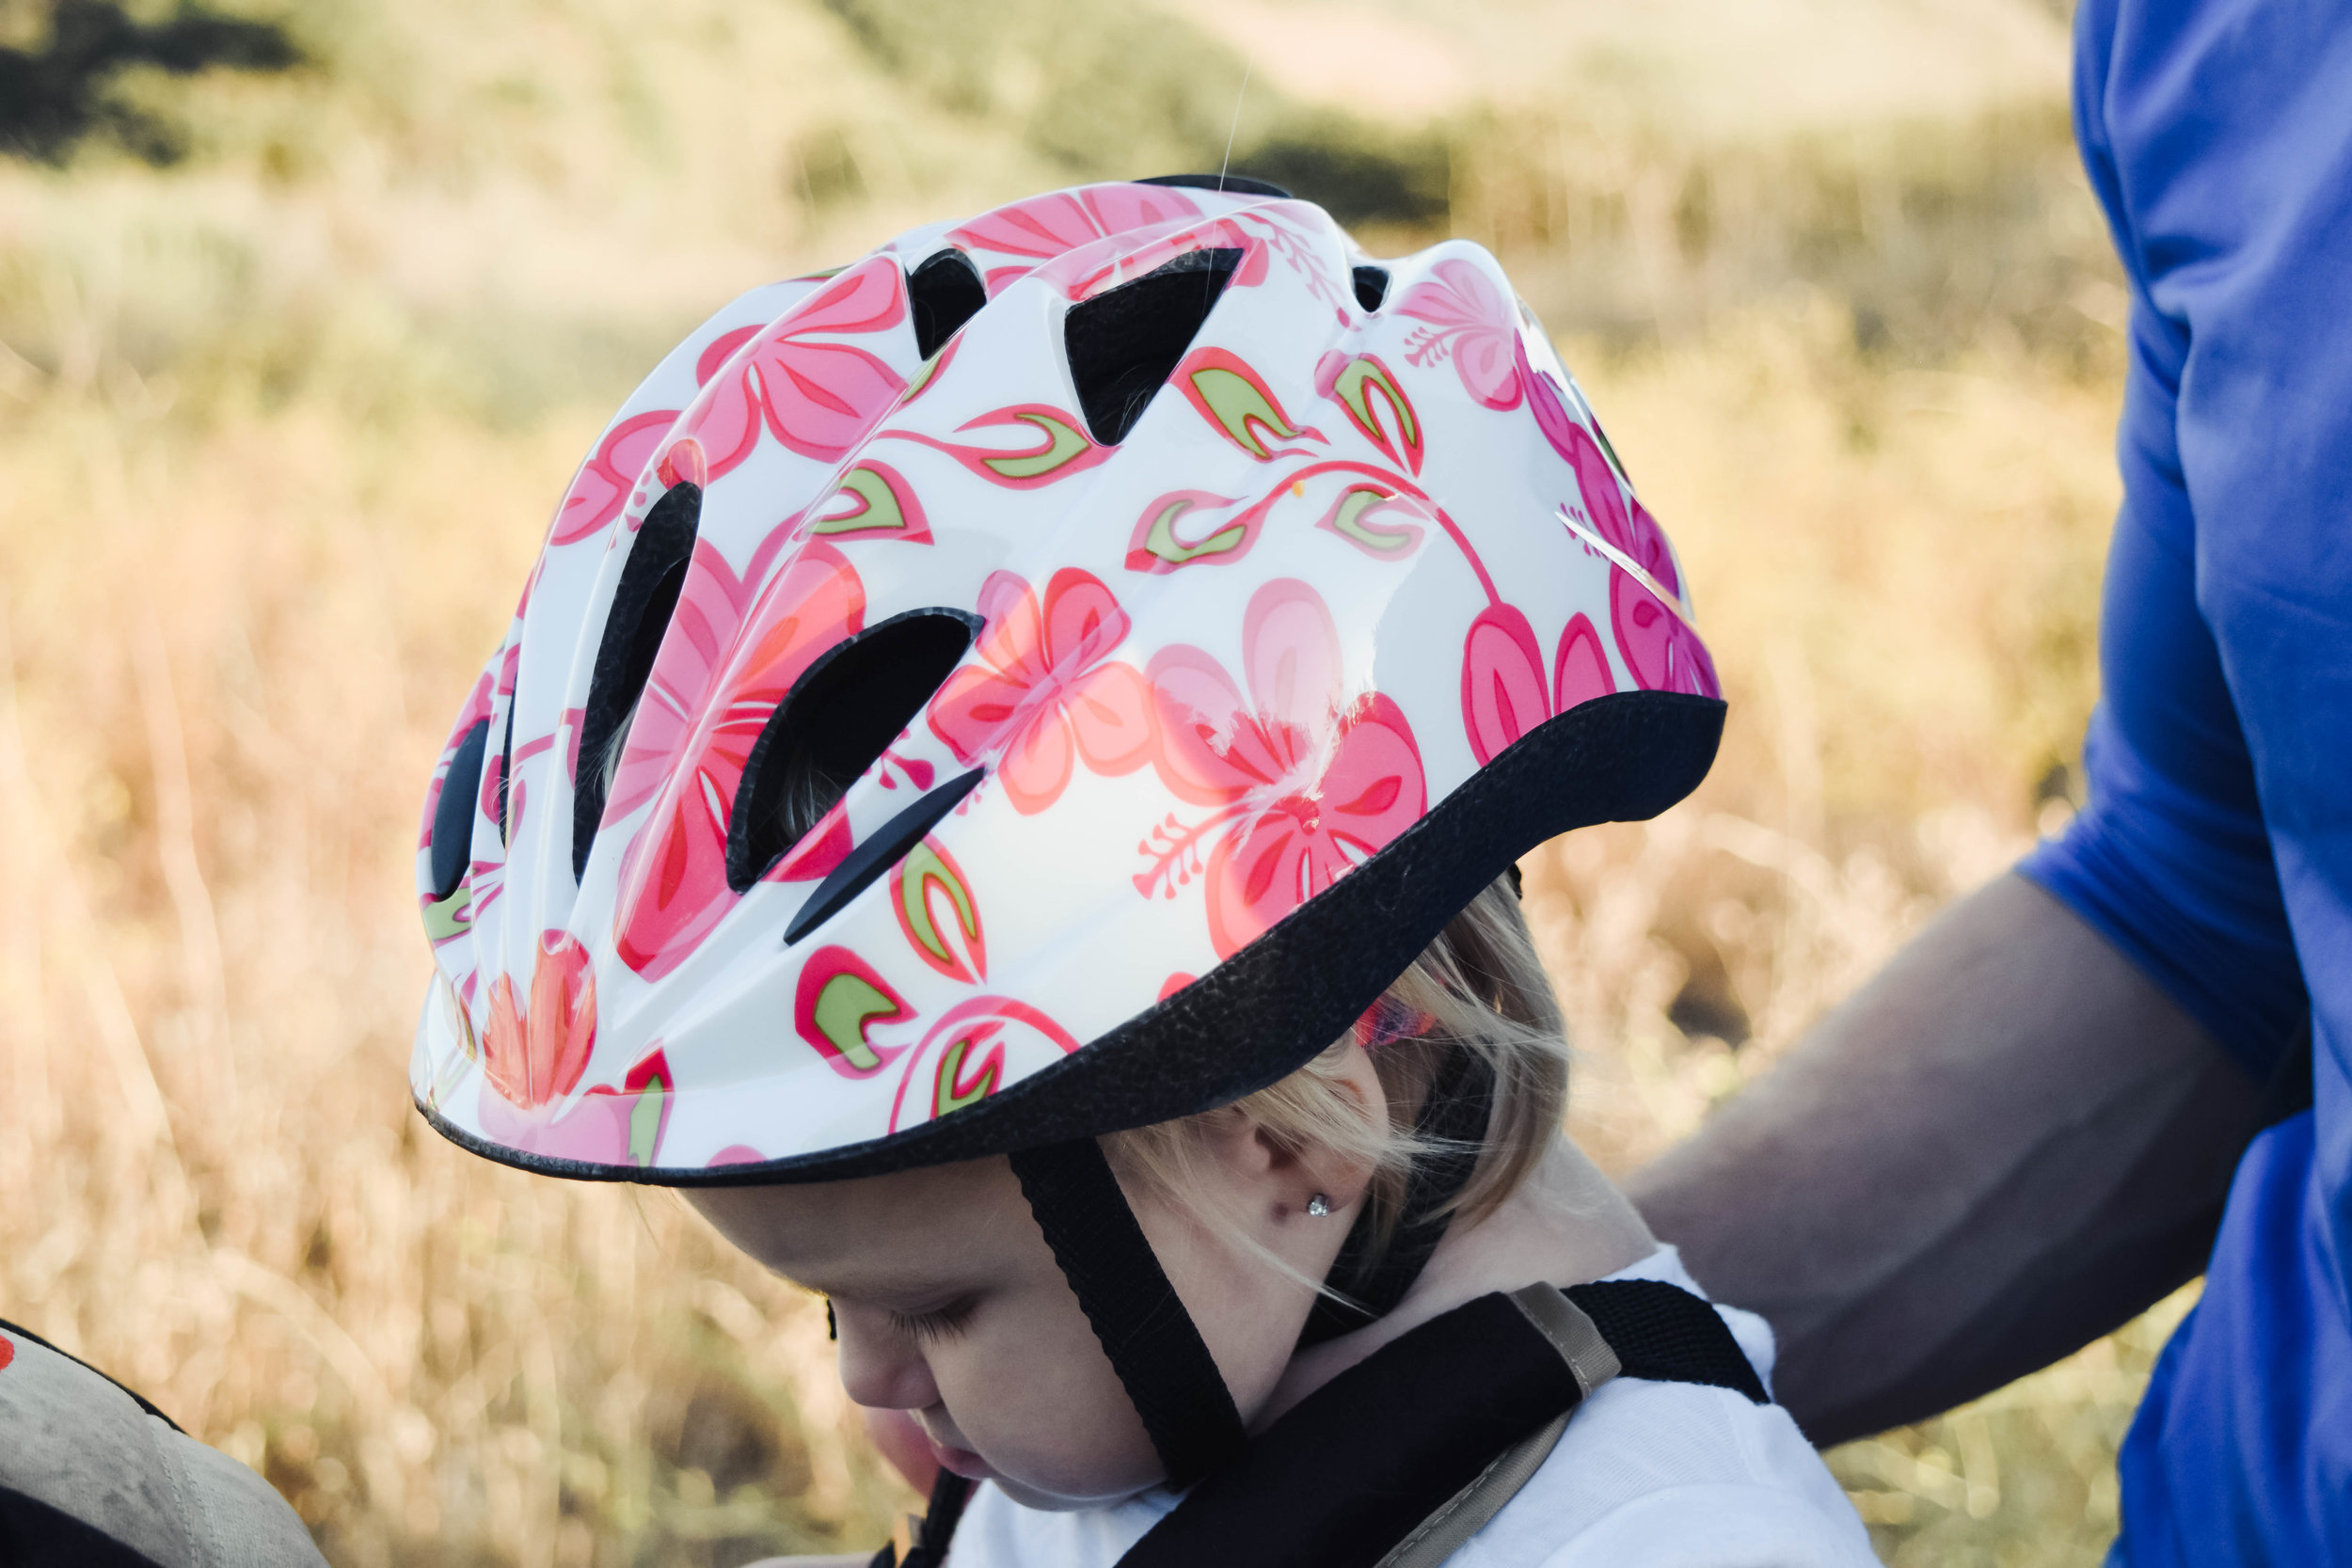 Floral Baby Bike Helmet - Kent Bicycles -- Baby Bike Seat Attachment | A Fun Way to Exercise - Fun Summer Daddy + Me Activities